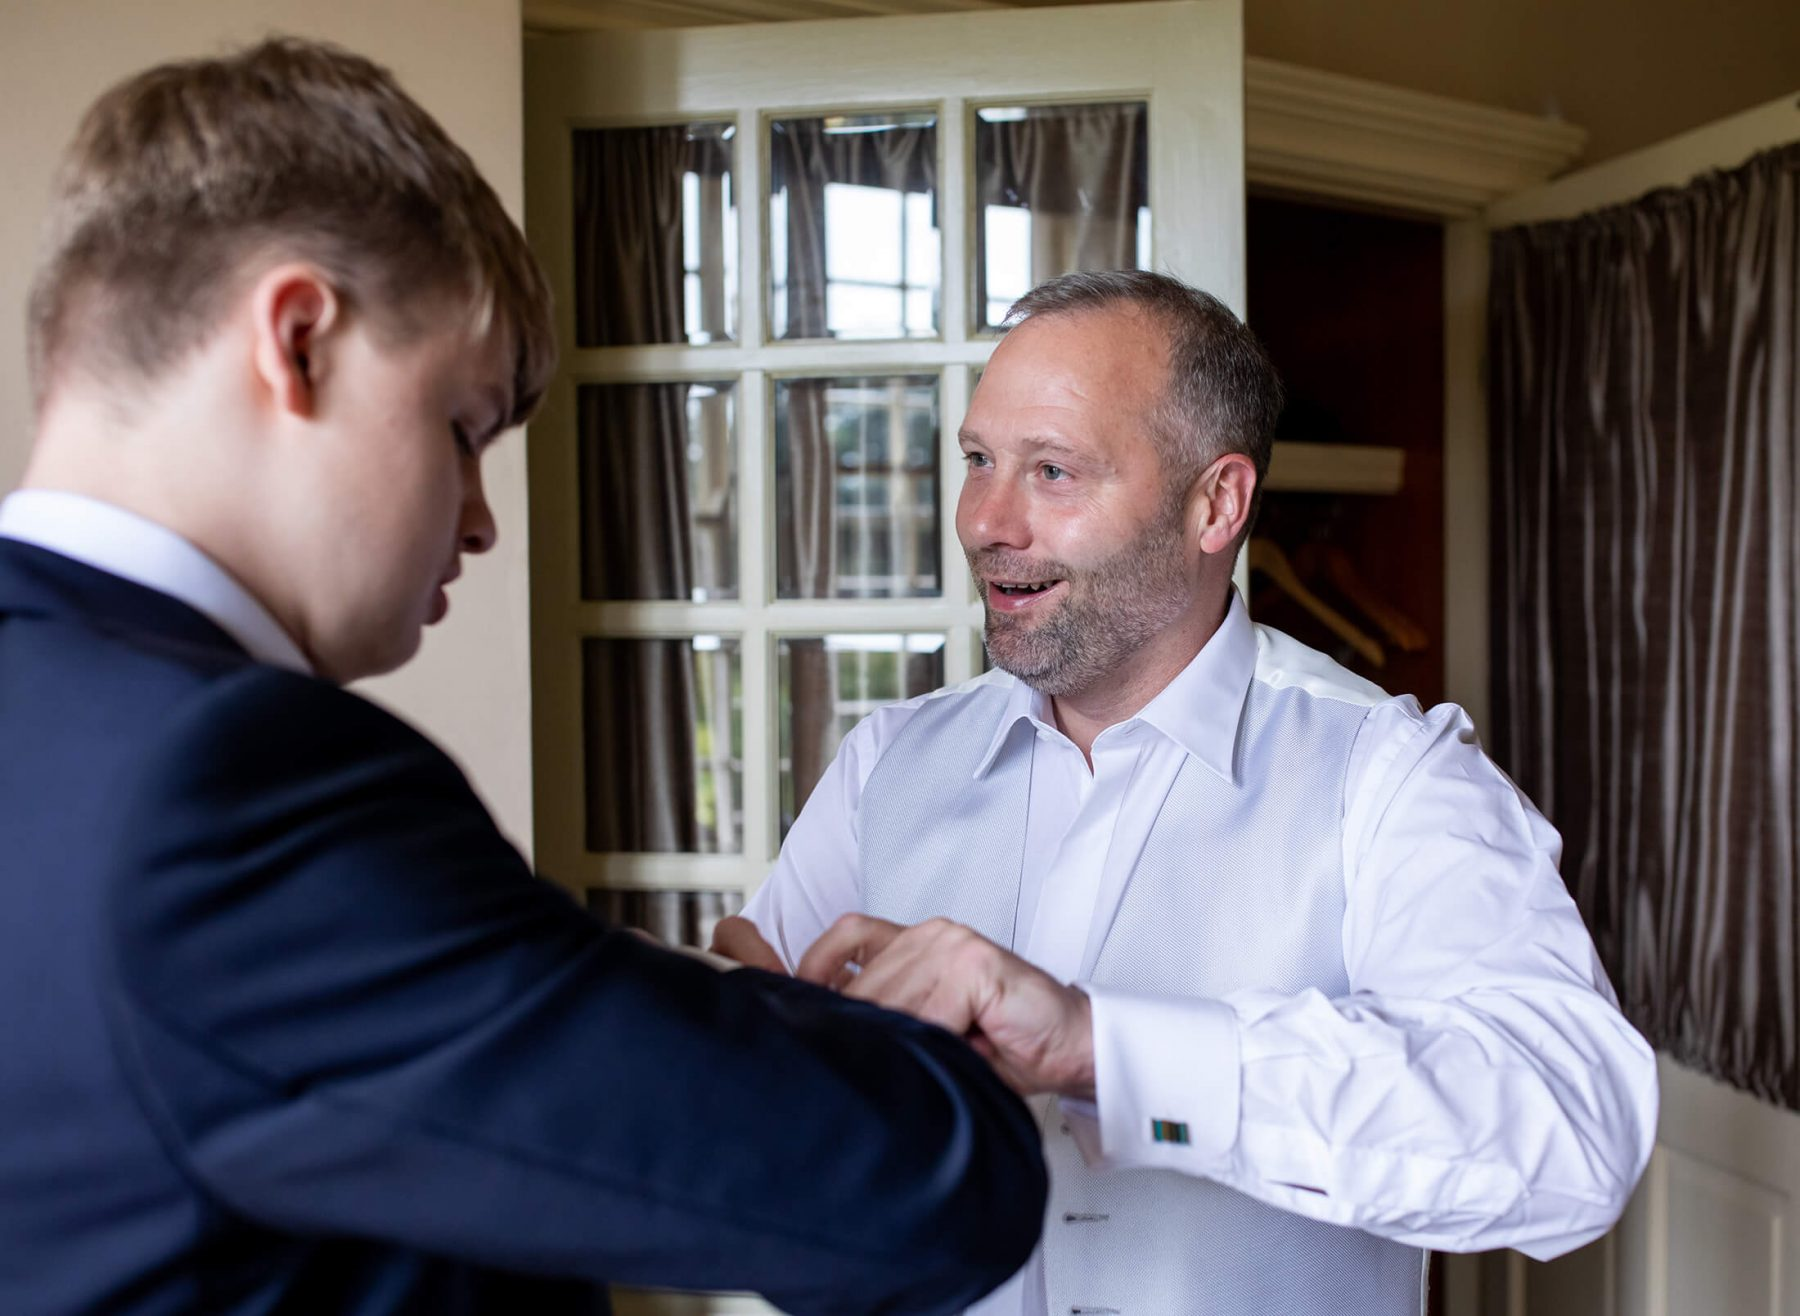 A groom helps his best man with the cufflinks.